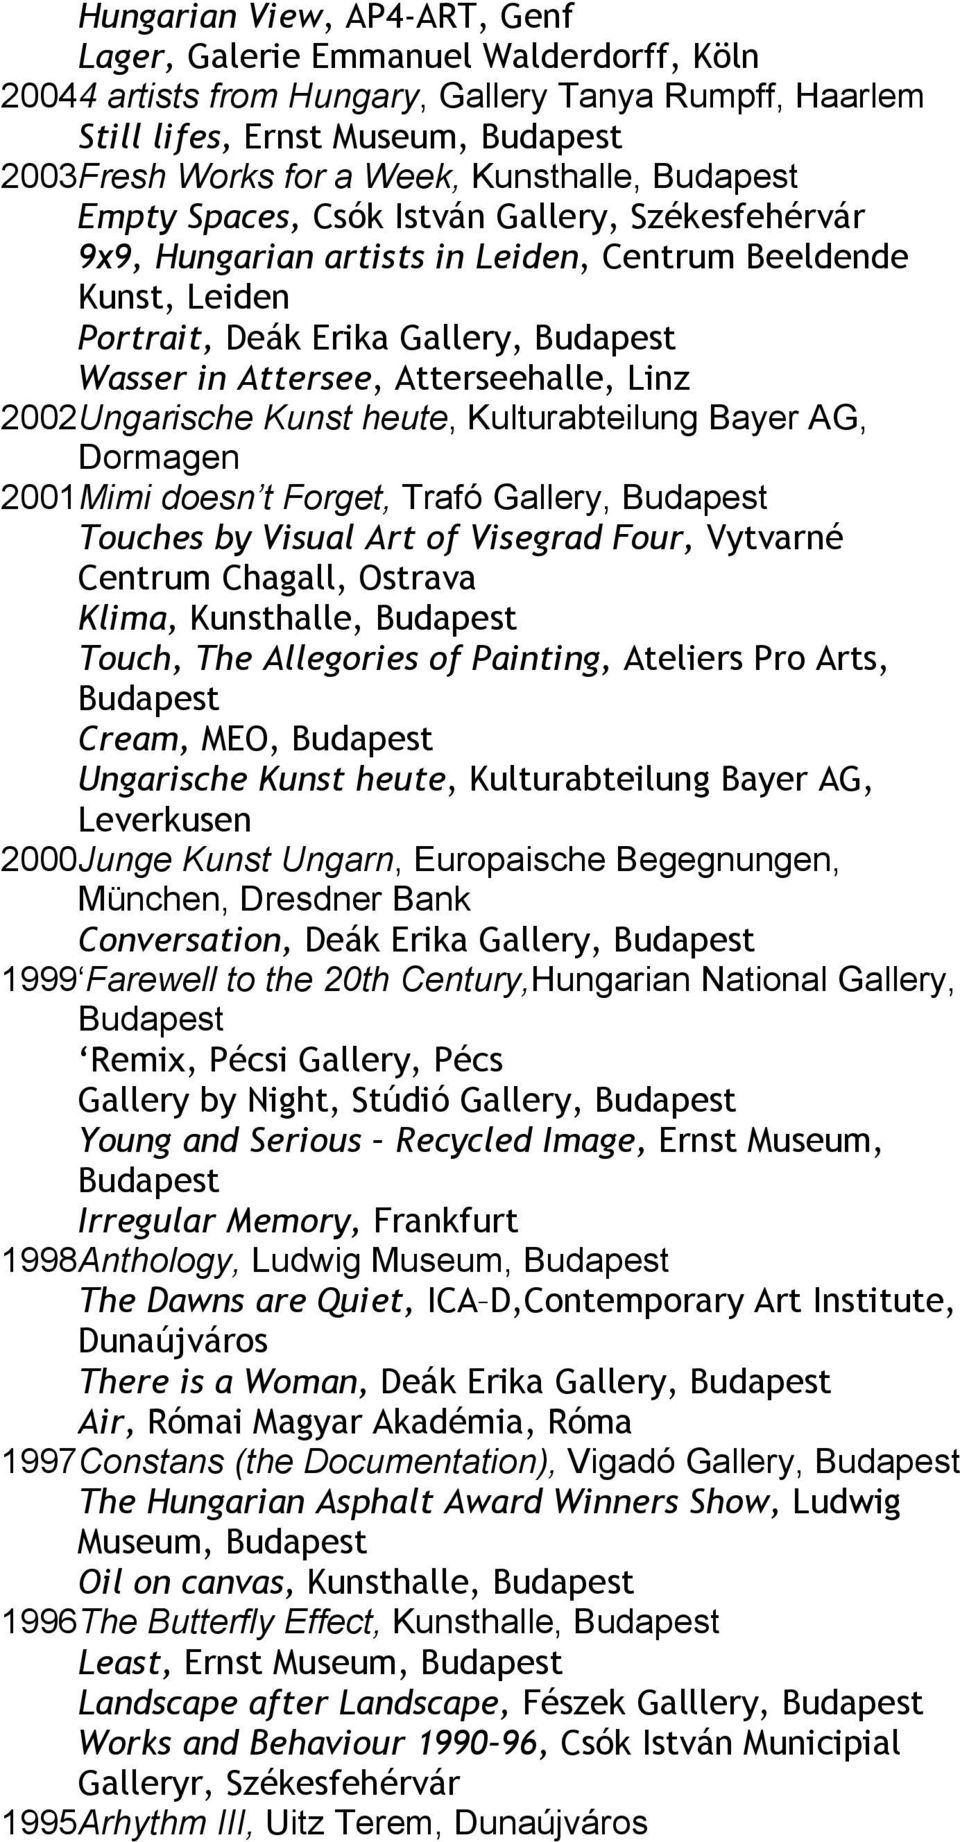 Ungarische Kunst heute, Kulturabteilung Bayer AG, Dormagen 2001 Mimi doesn t Forget, Trafó Gallery, Touches by Visual Art of Visegrad Four, Vytvarné Centrum Chagall, Ostrava Klima, Kunsthalle, Touch,